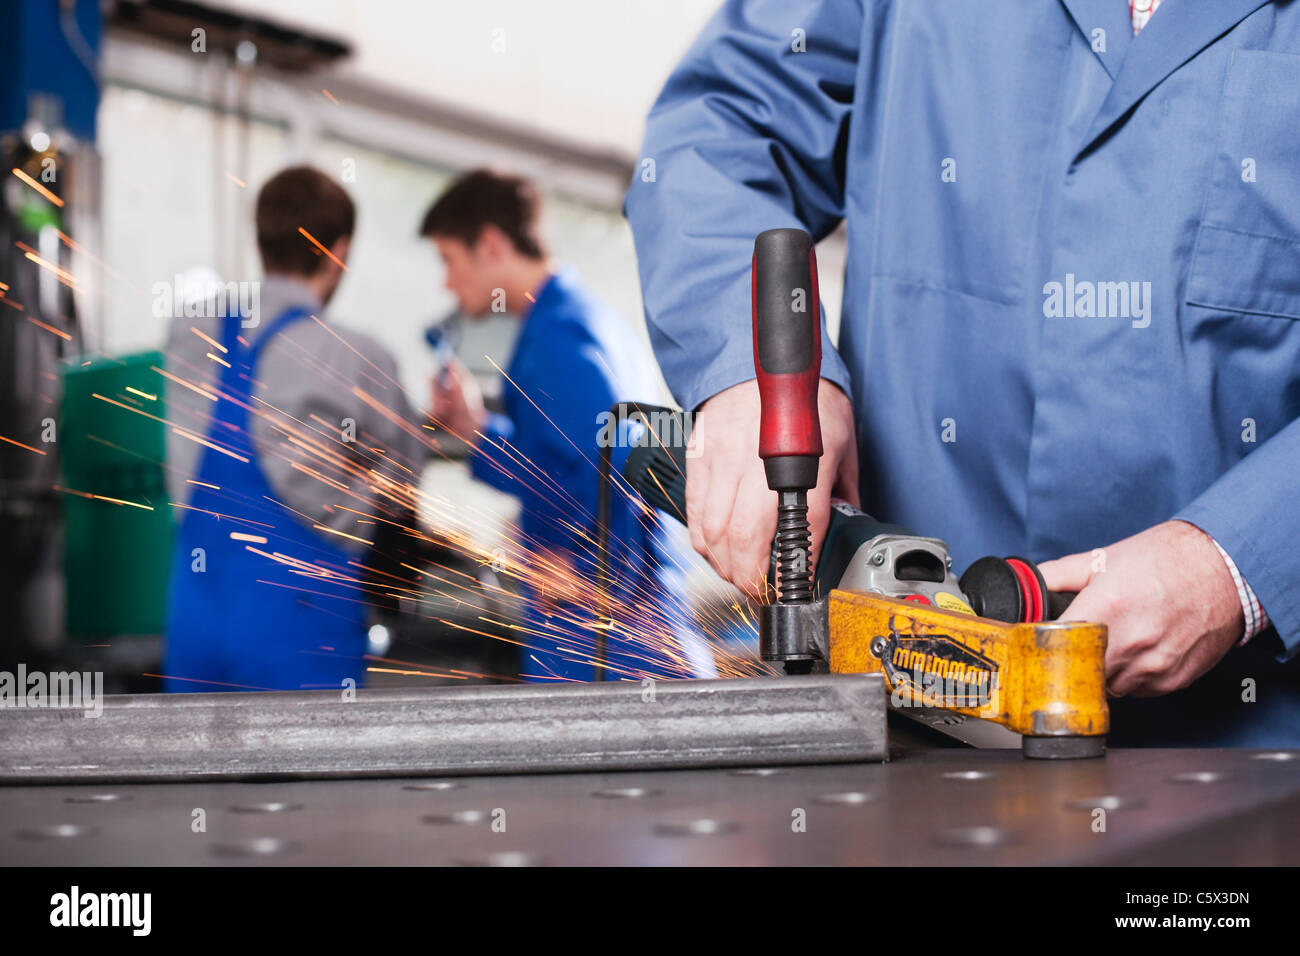 Germany, Neukirch, Person using grinder,  Apprentice and foreman in background Stock Photo